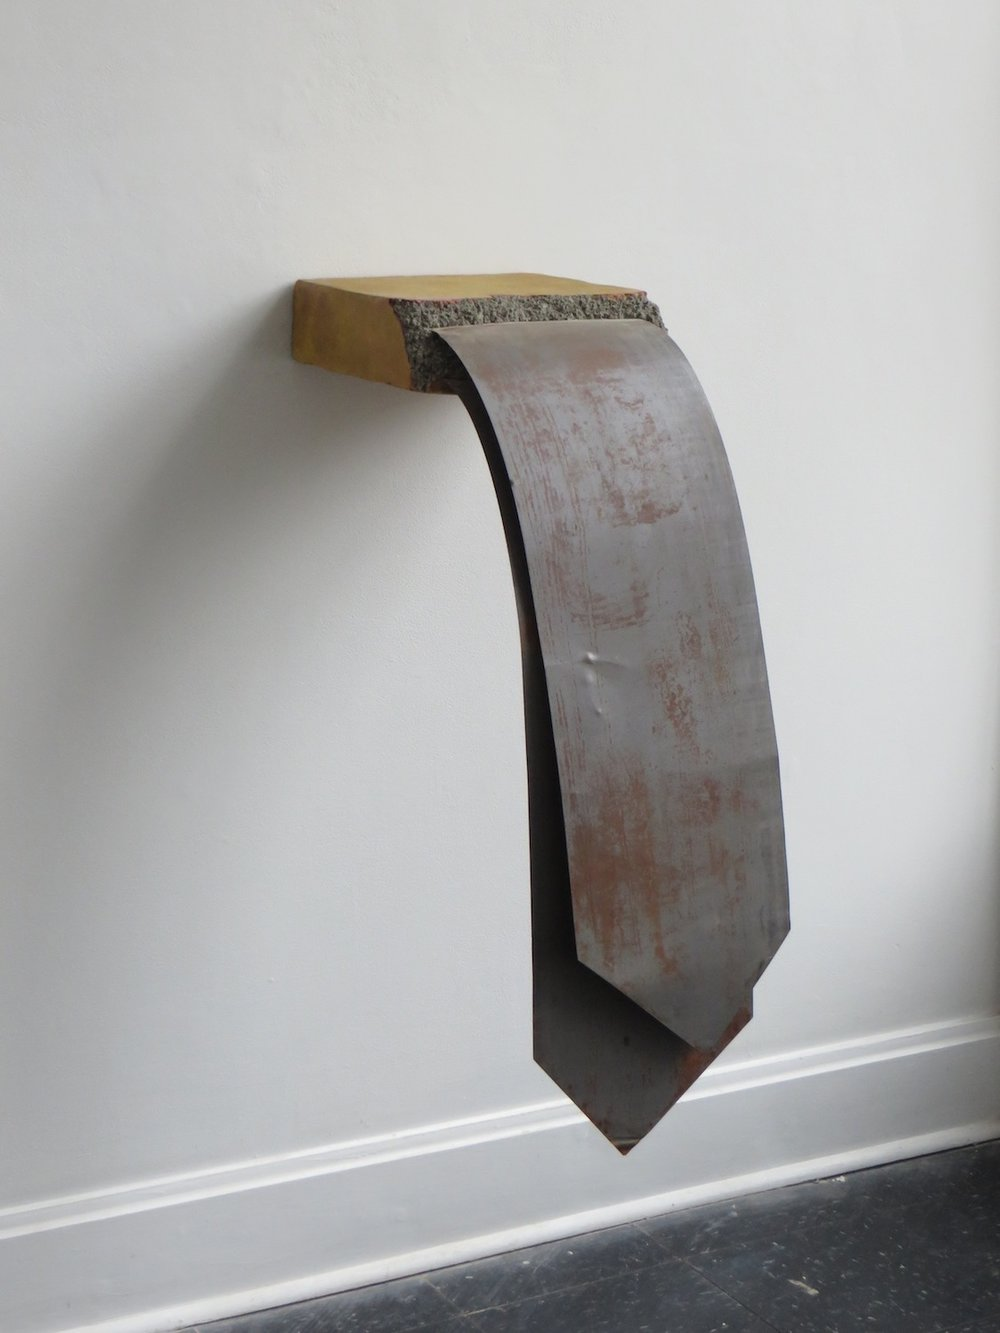 Lingua , 2014, cast concrete, pigments, and reclaimed metal, 31 x 12 x 22 inches